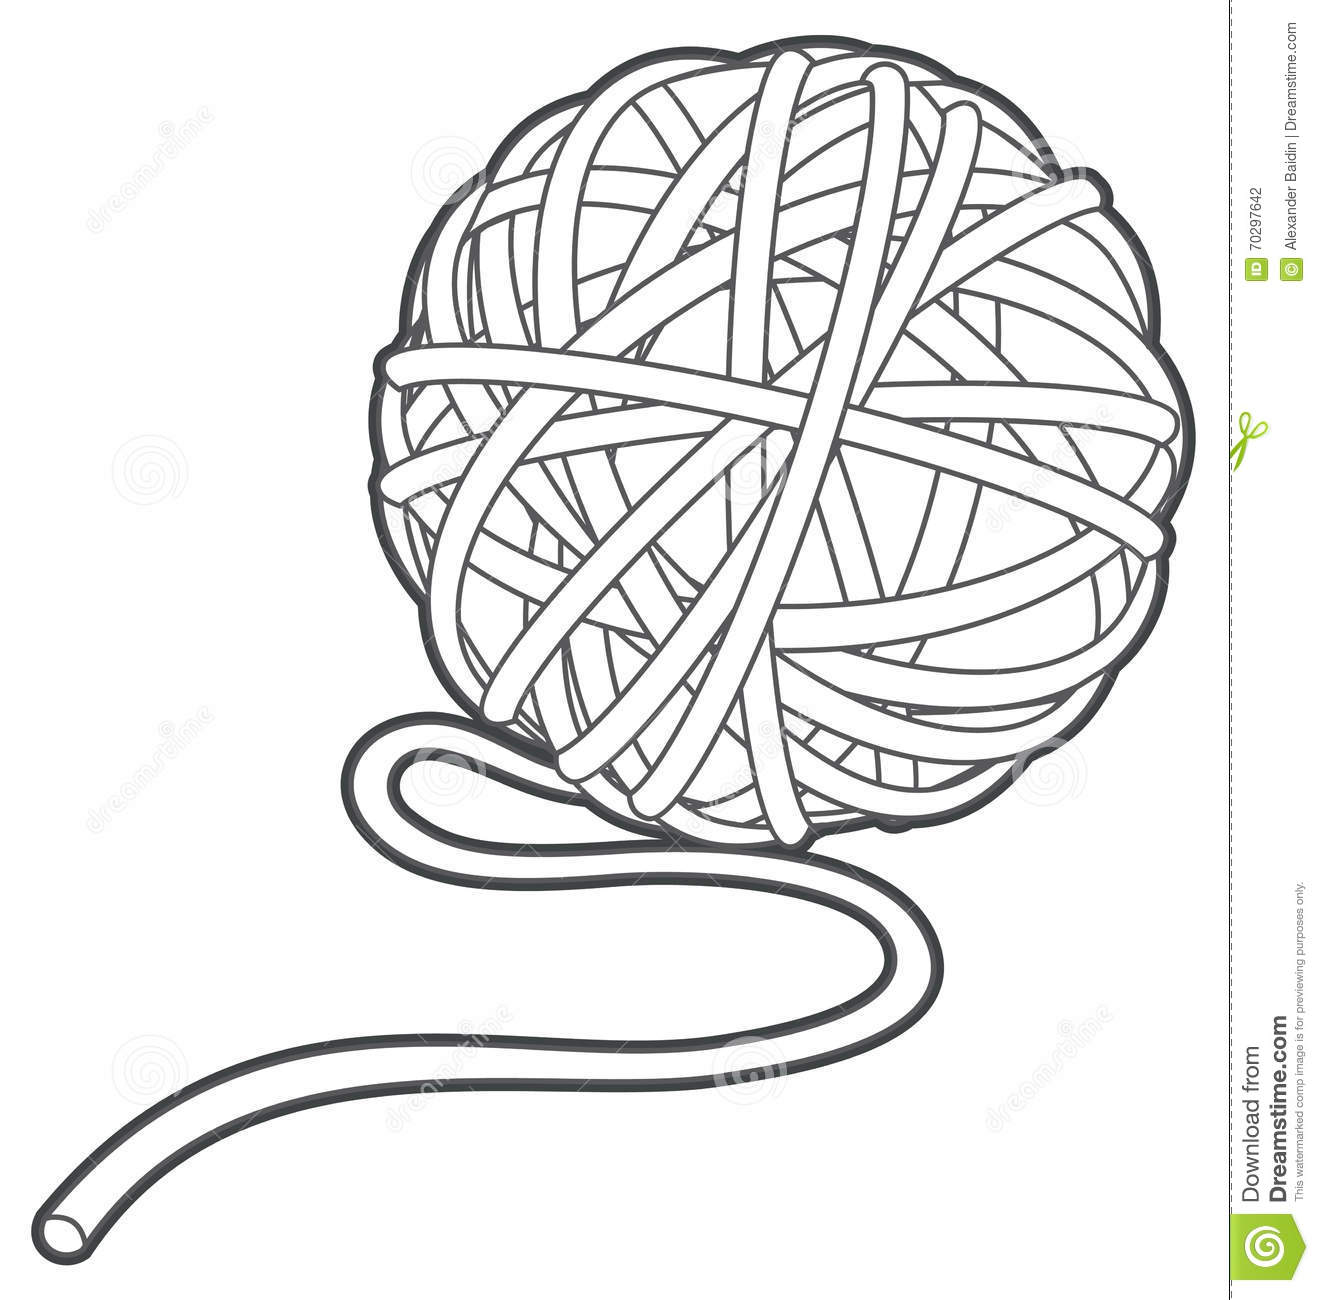 Yarn Clipart Black And White Ball Of Yarn Vector Ou...